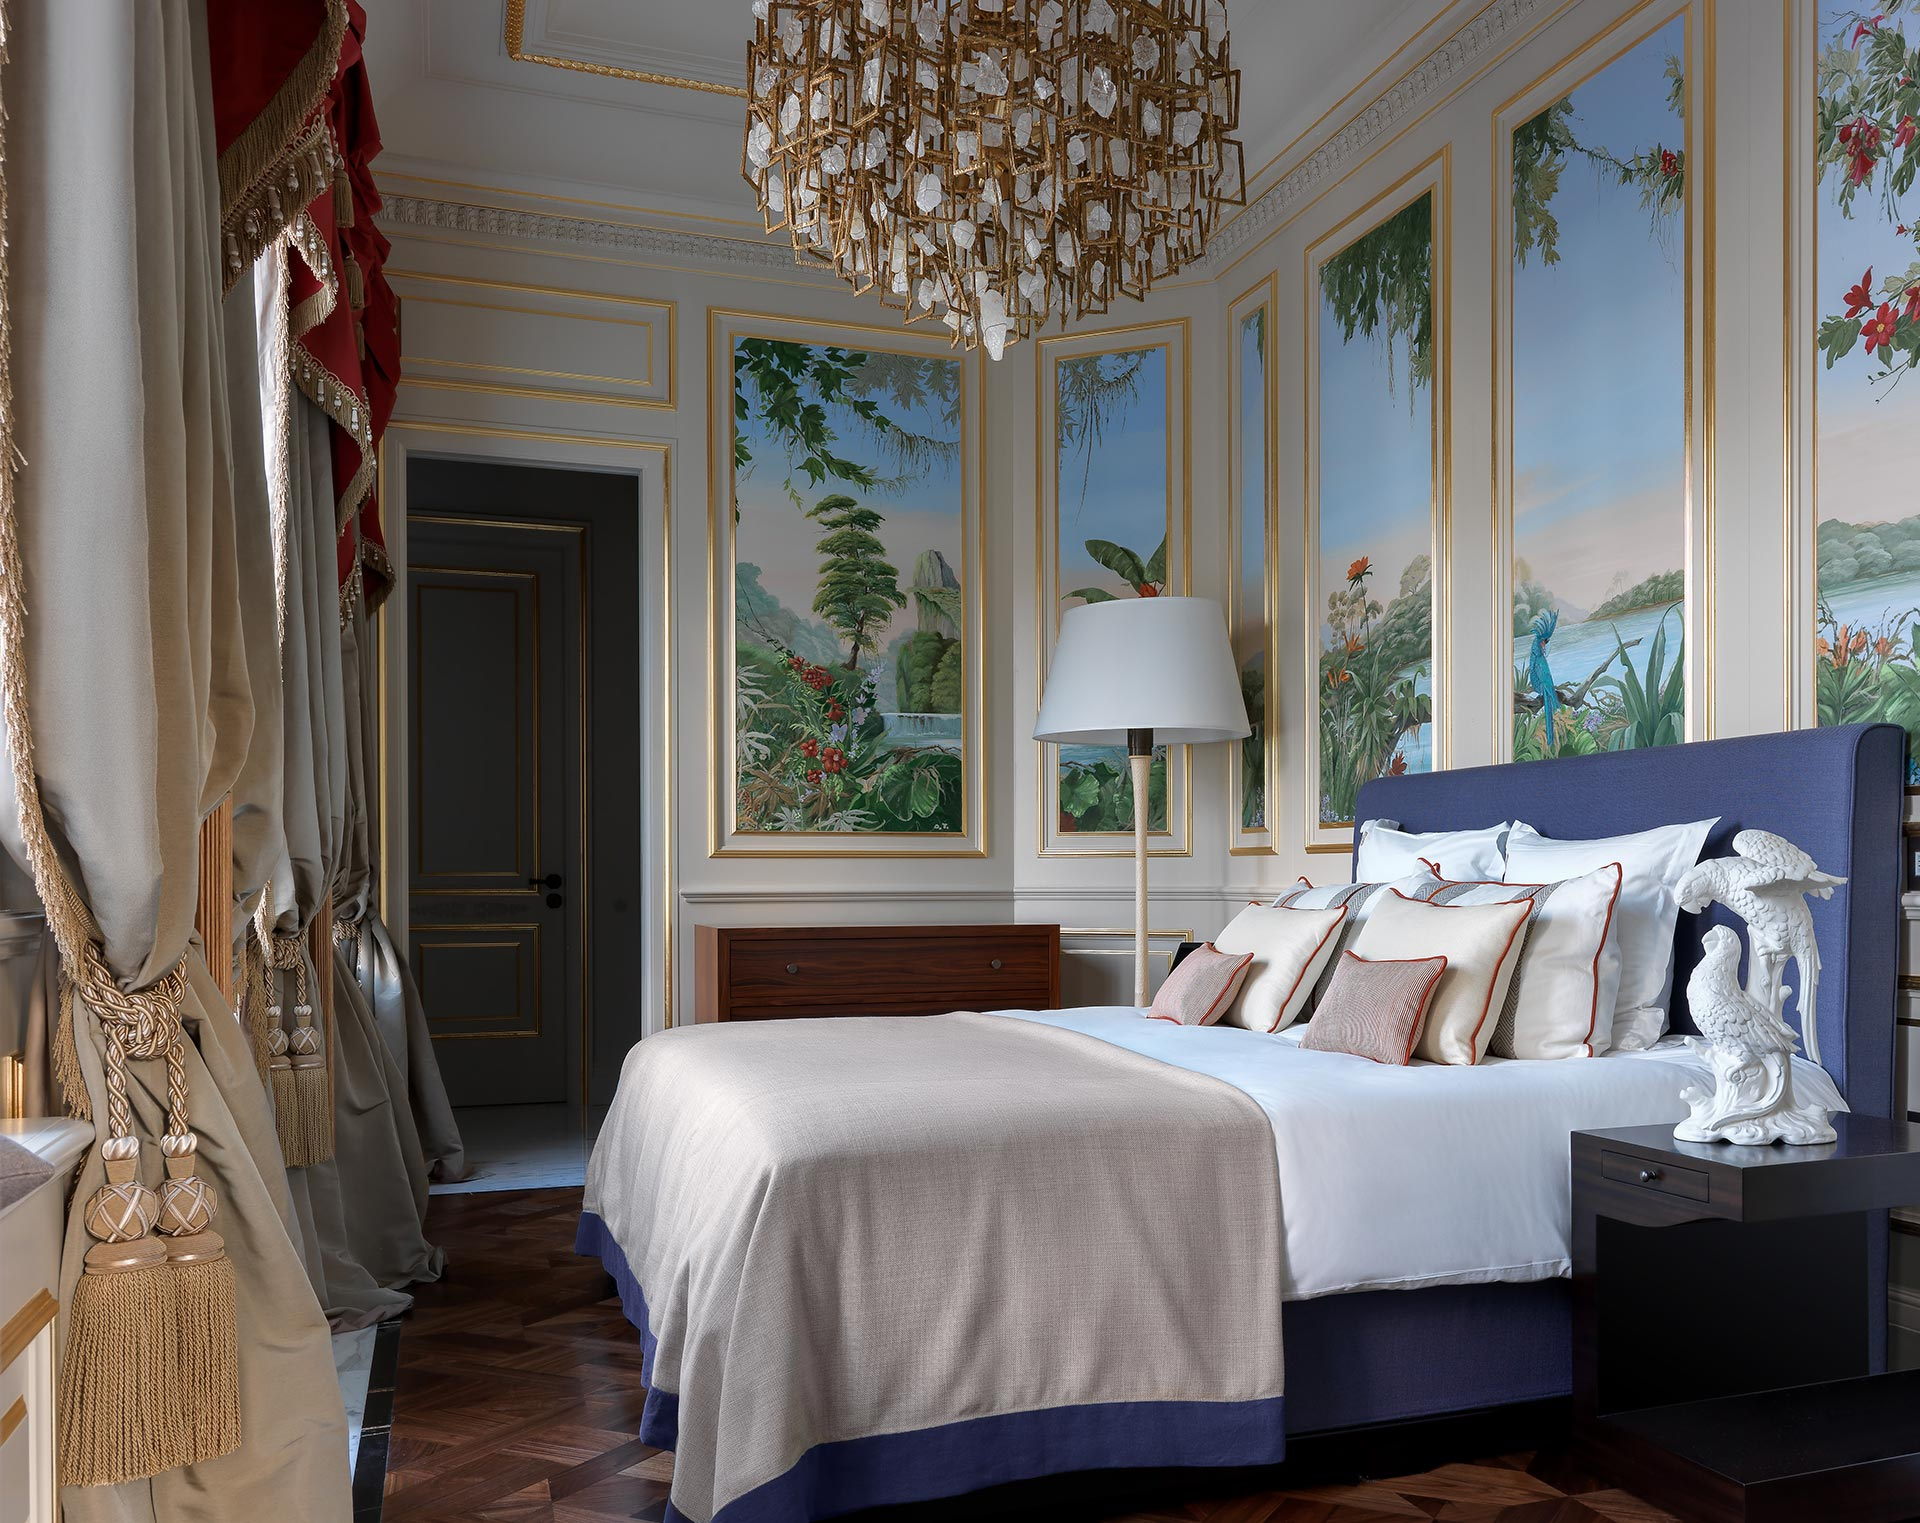 Bedroom of La Datcha, a luxury resort in Forte dei Marmi, Italy, furnished with Promemoria | Promemoria